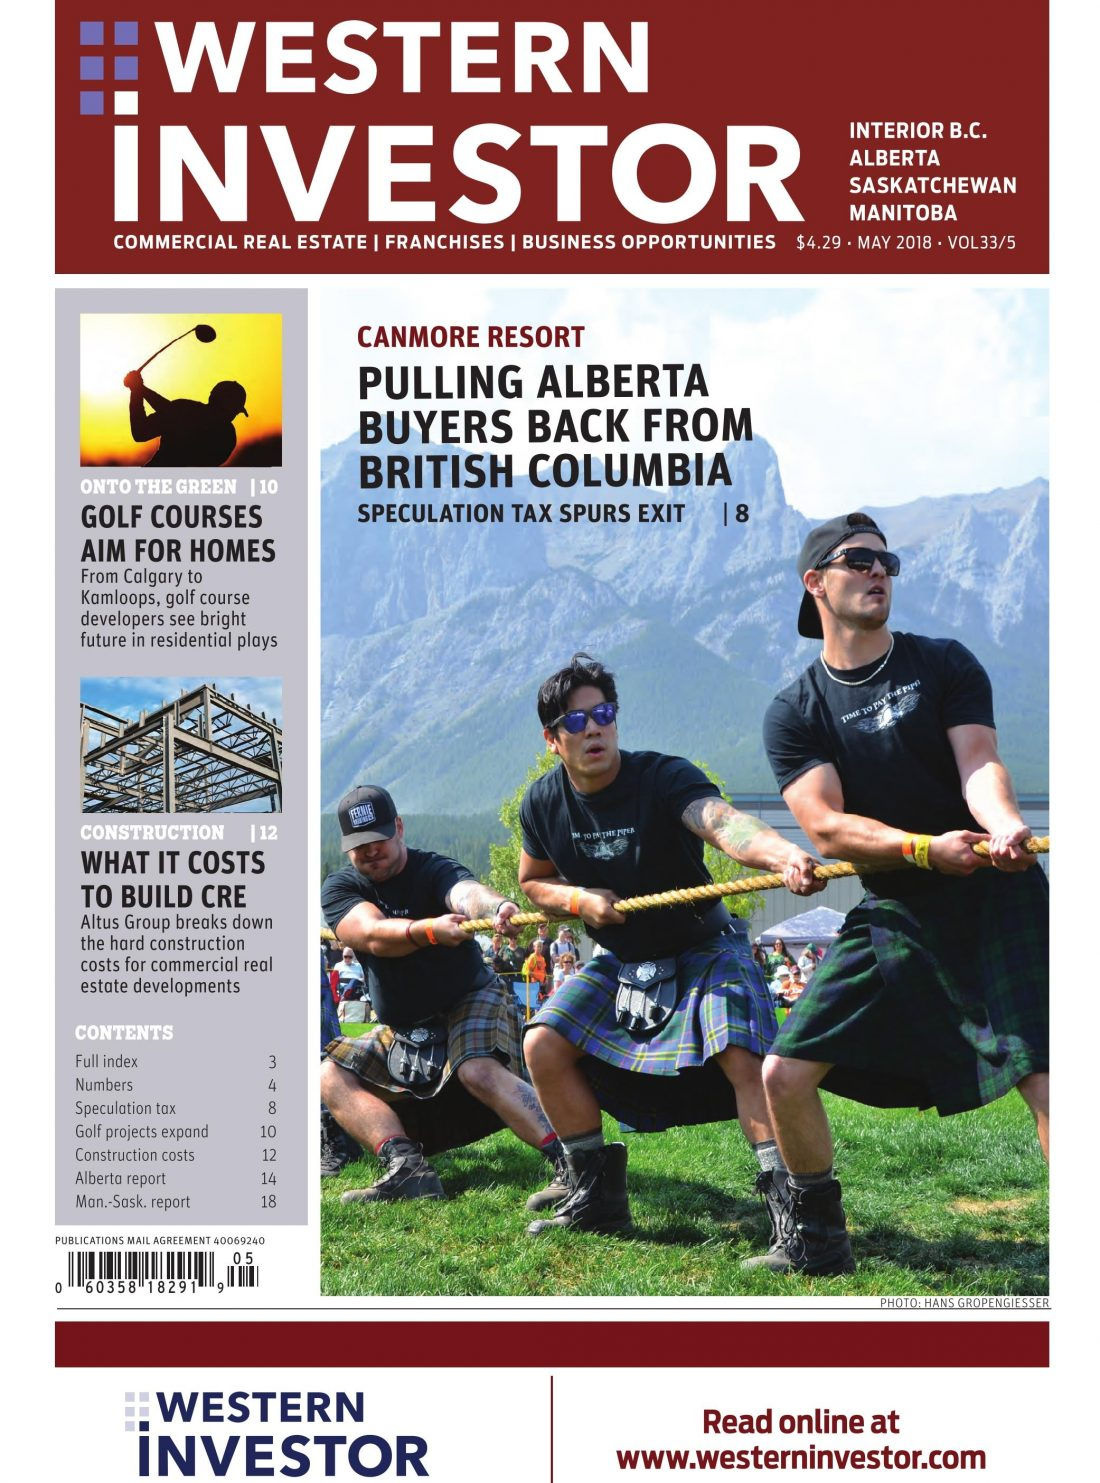 Western Investor Alberta edition front page